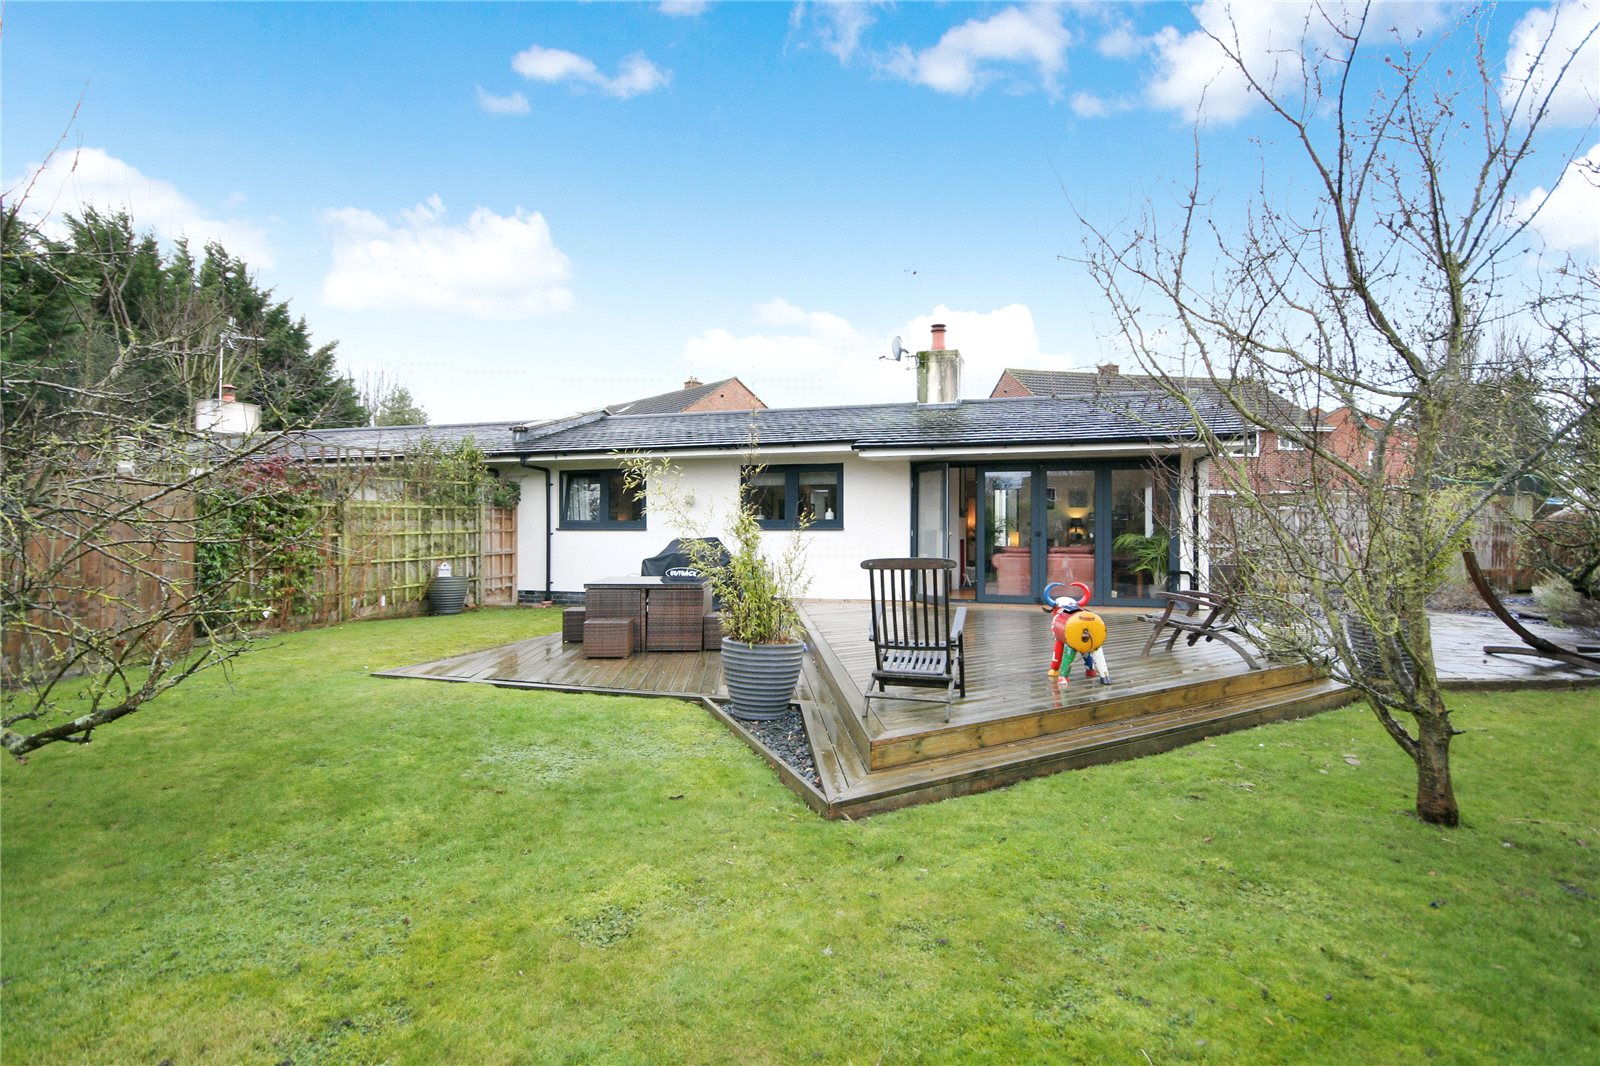 3 Bedrooms Bungalow for sale in Daylesford Close Cheltenham GL51